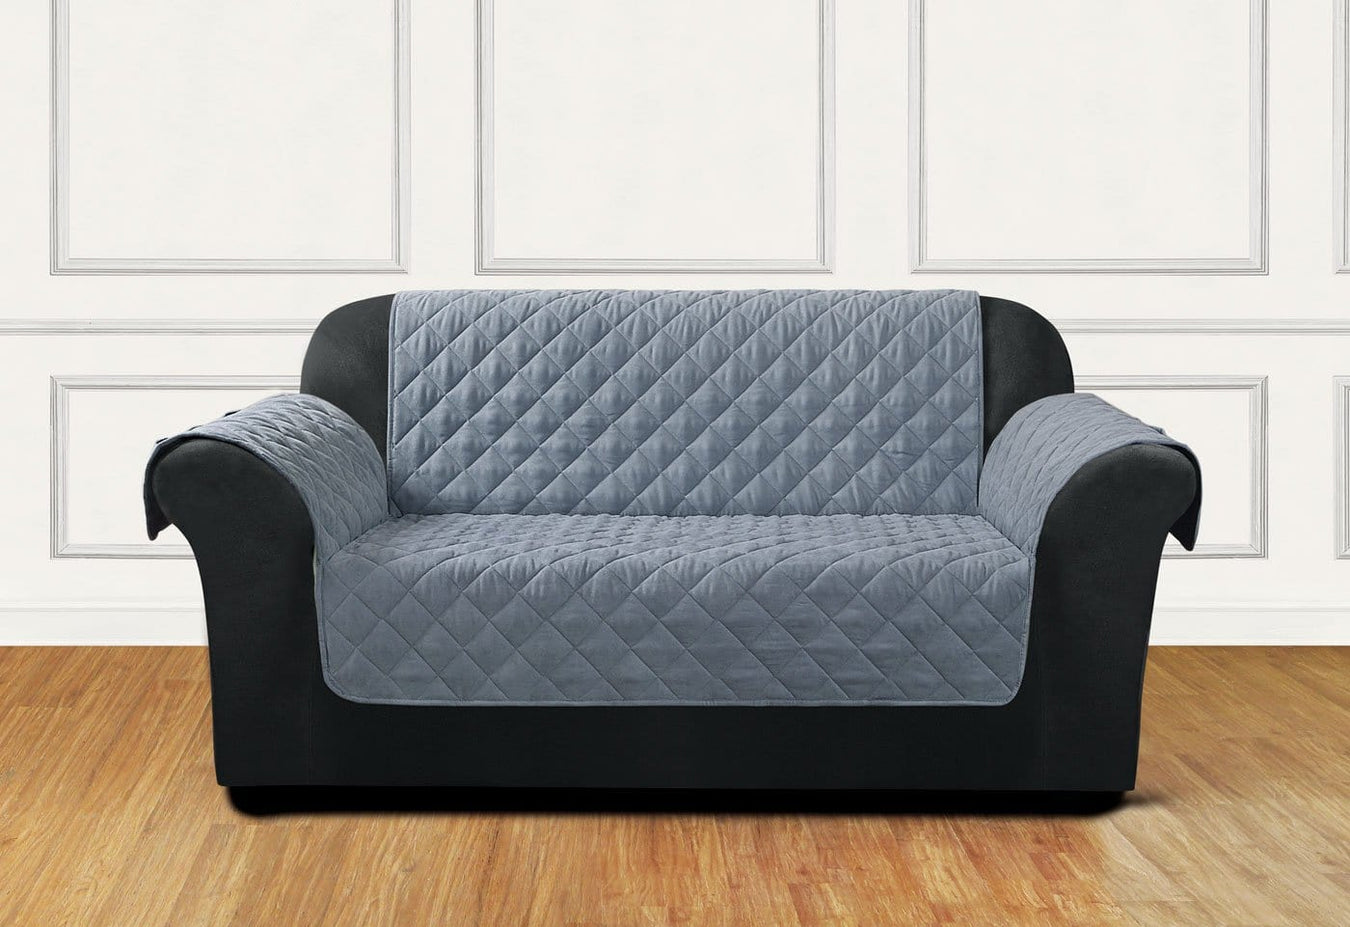 Breathable Mesh Loveseat Furniture Cover